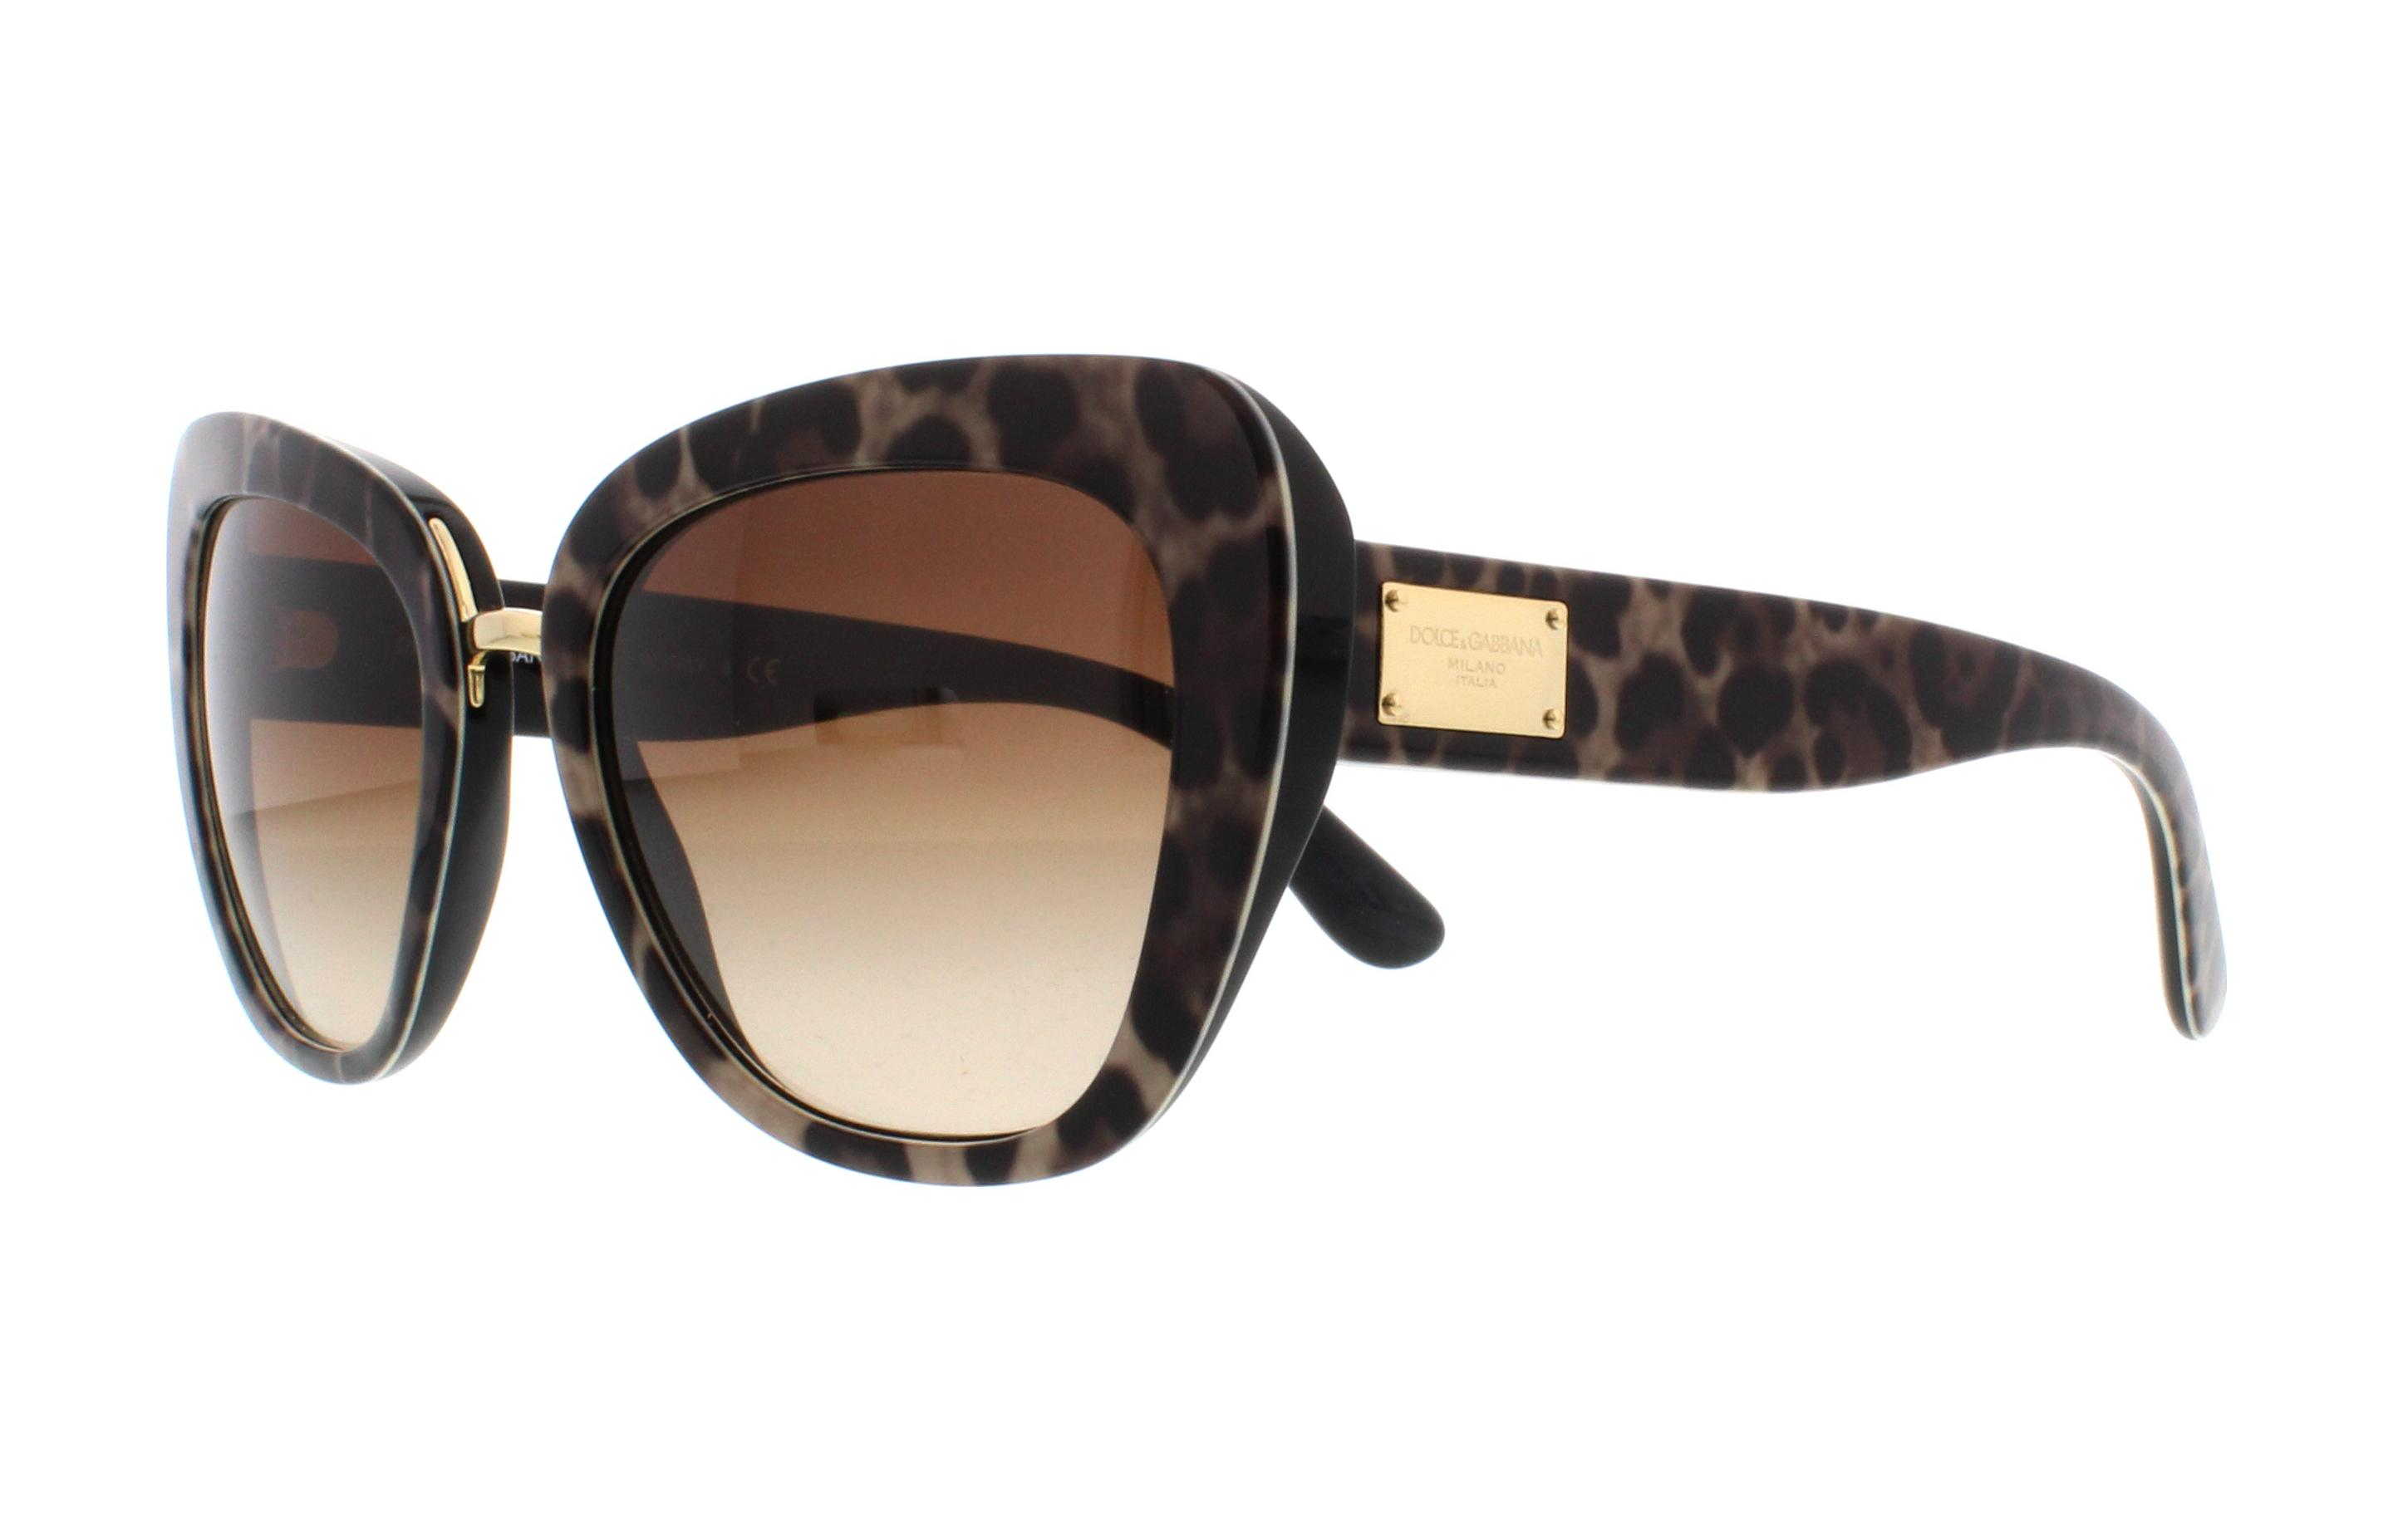 f7574fde8cd6ea DOLCE   GABBANA Sunglasses DG4296 199513 Leoprint 53MM 8053672679120 ...